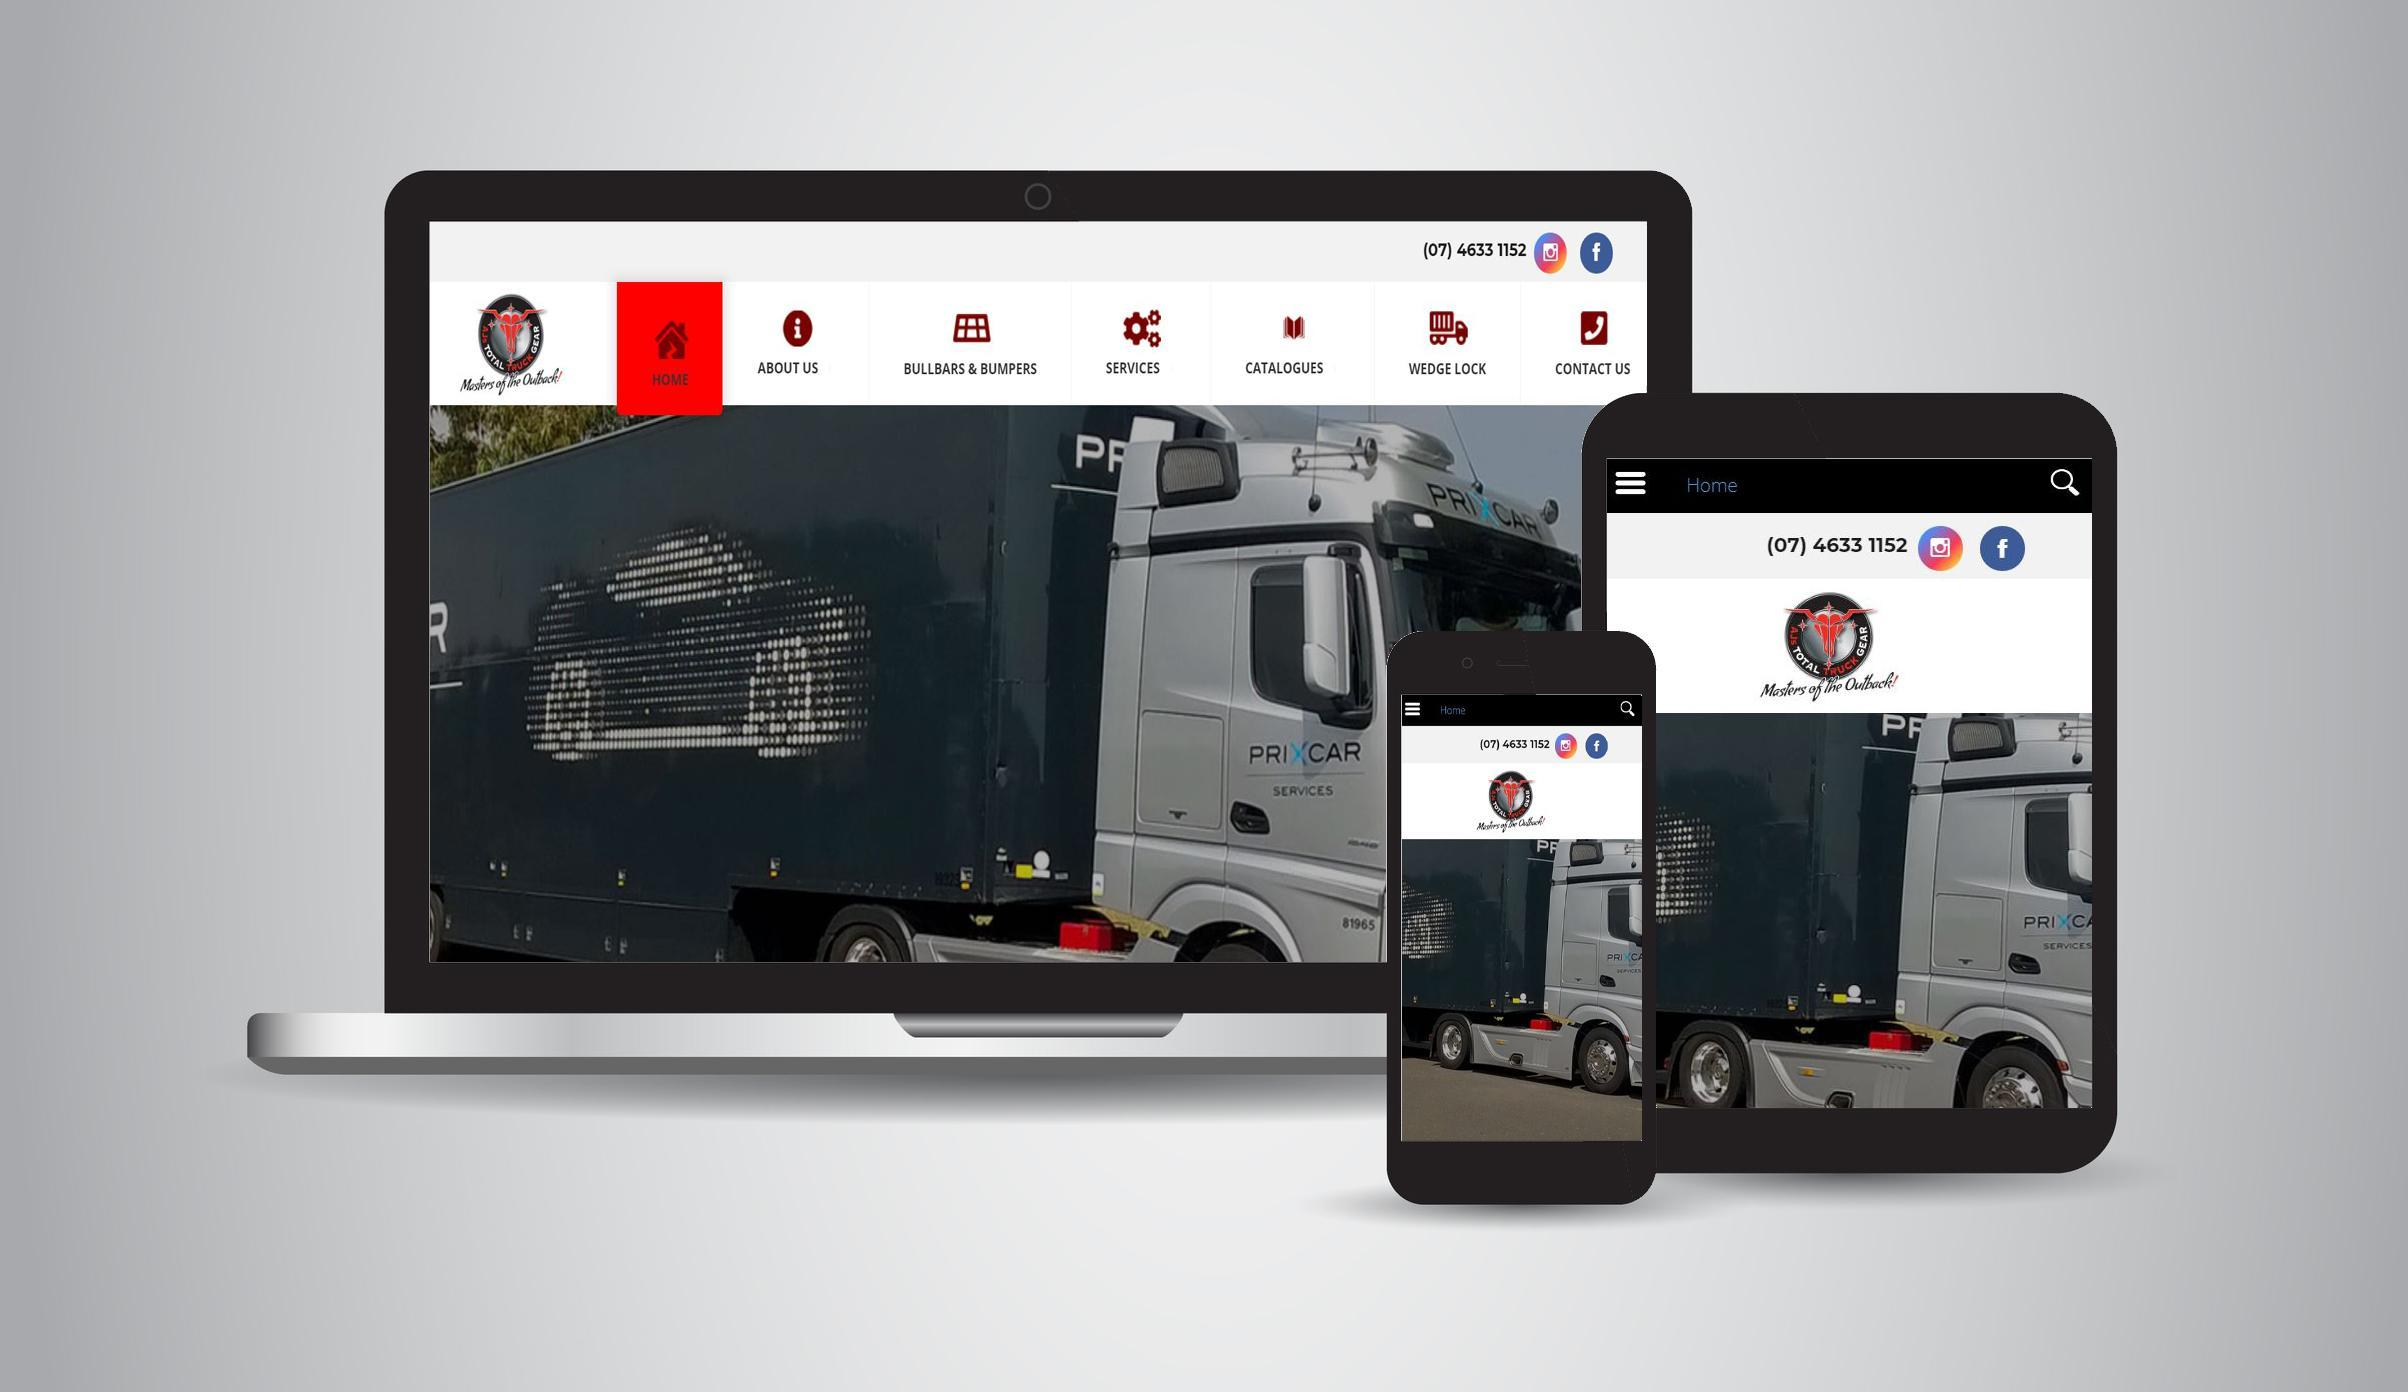 AJ's Total Truck Gear - Mechanical, Tyres, Suspension, Truck & 4x4 Accessories